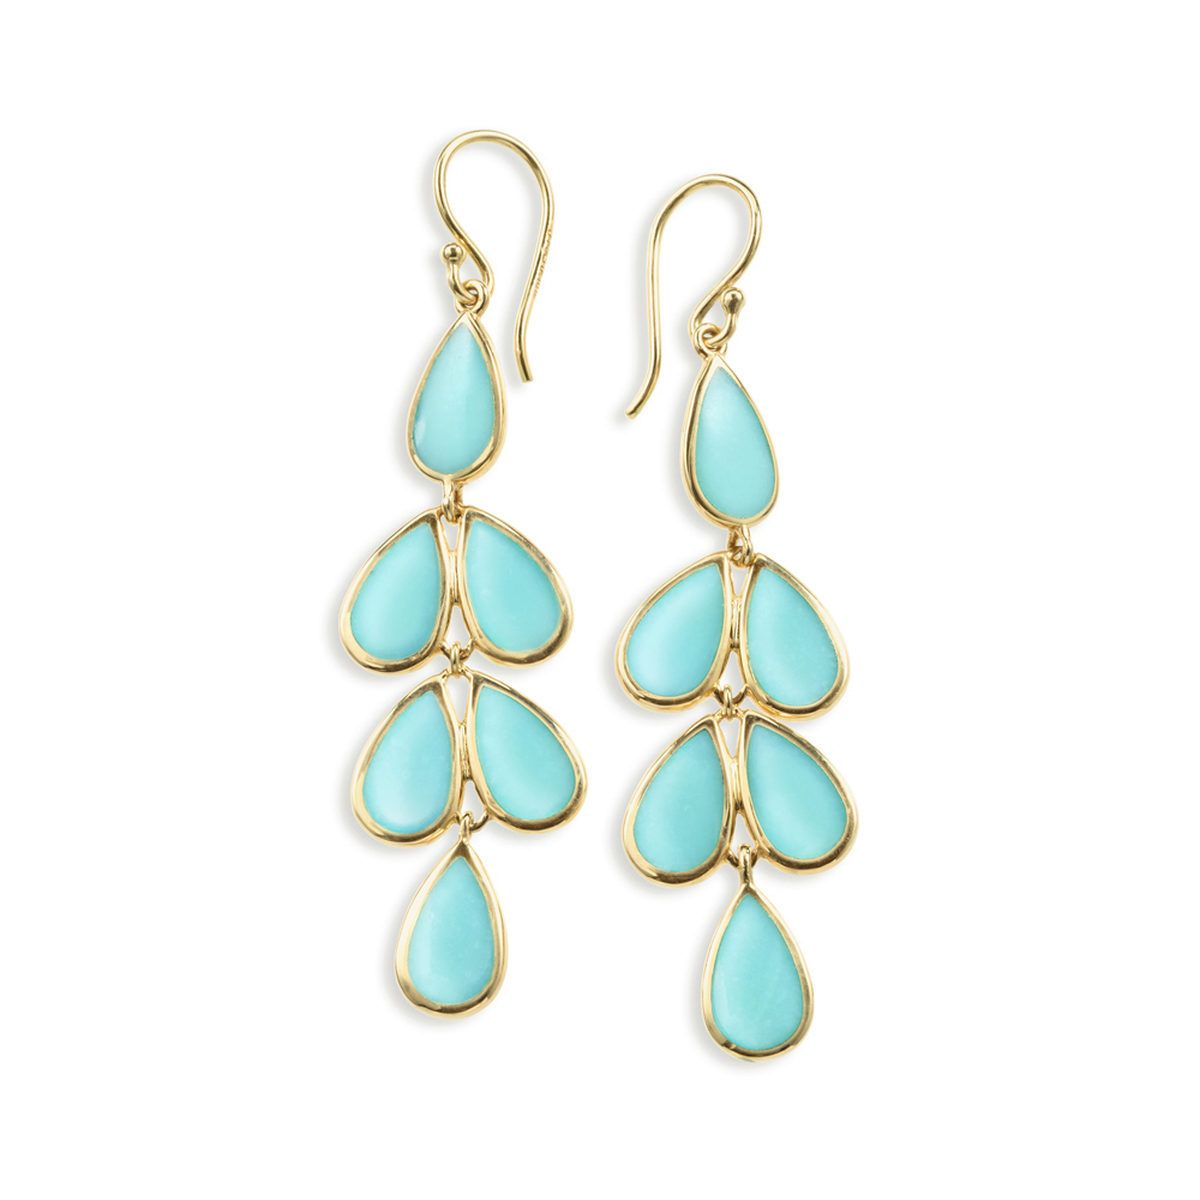 IPPOLITA 18K Polished Rock Candy® Teardrop Linear Cascade Earrings in Turquoise ~ Exclusively at Fink's - Fink's Jewelers